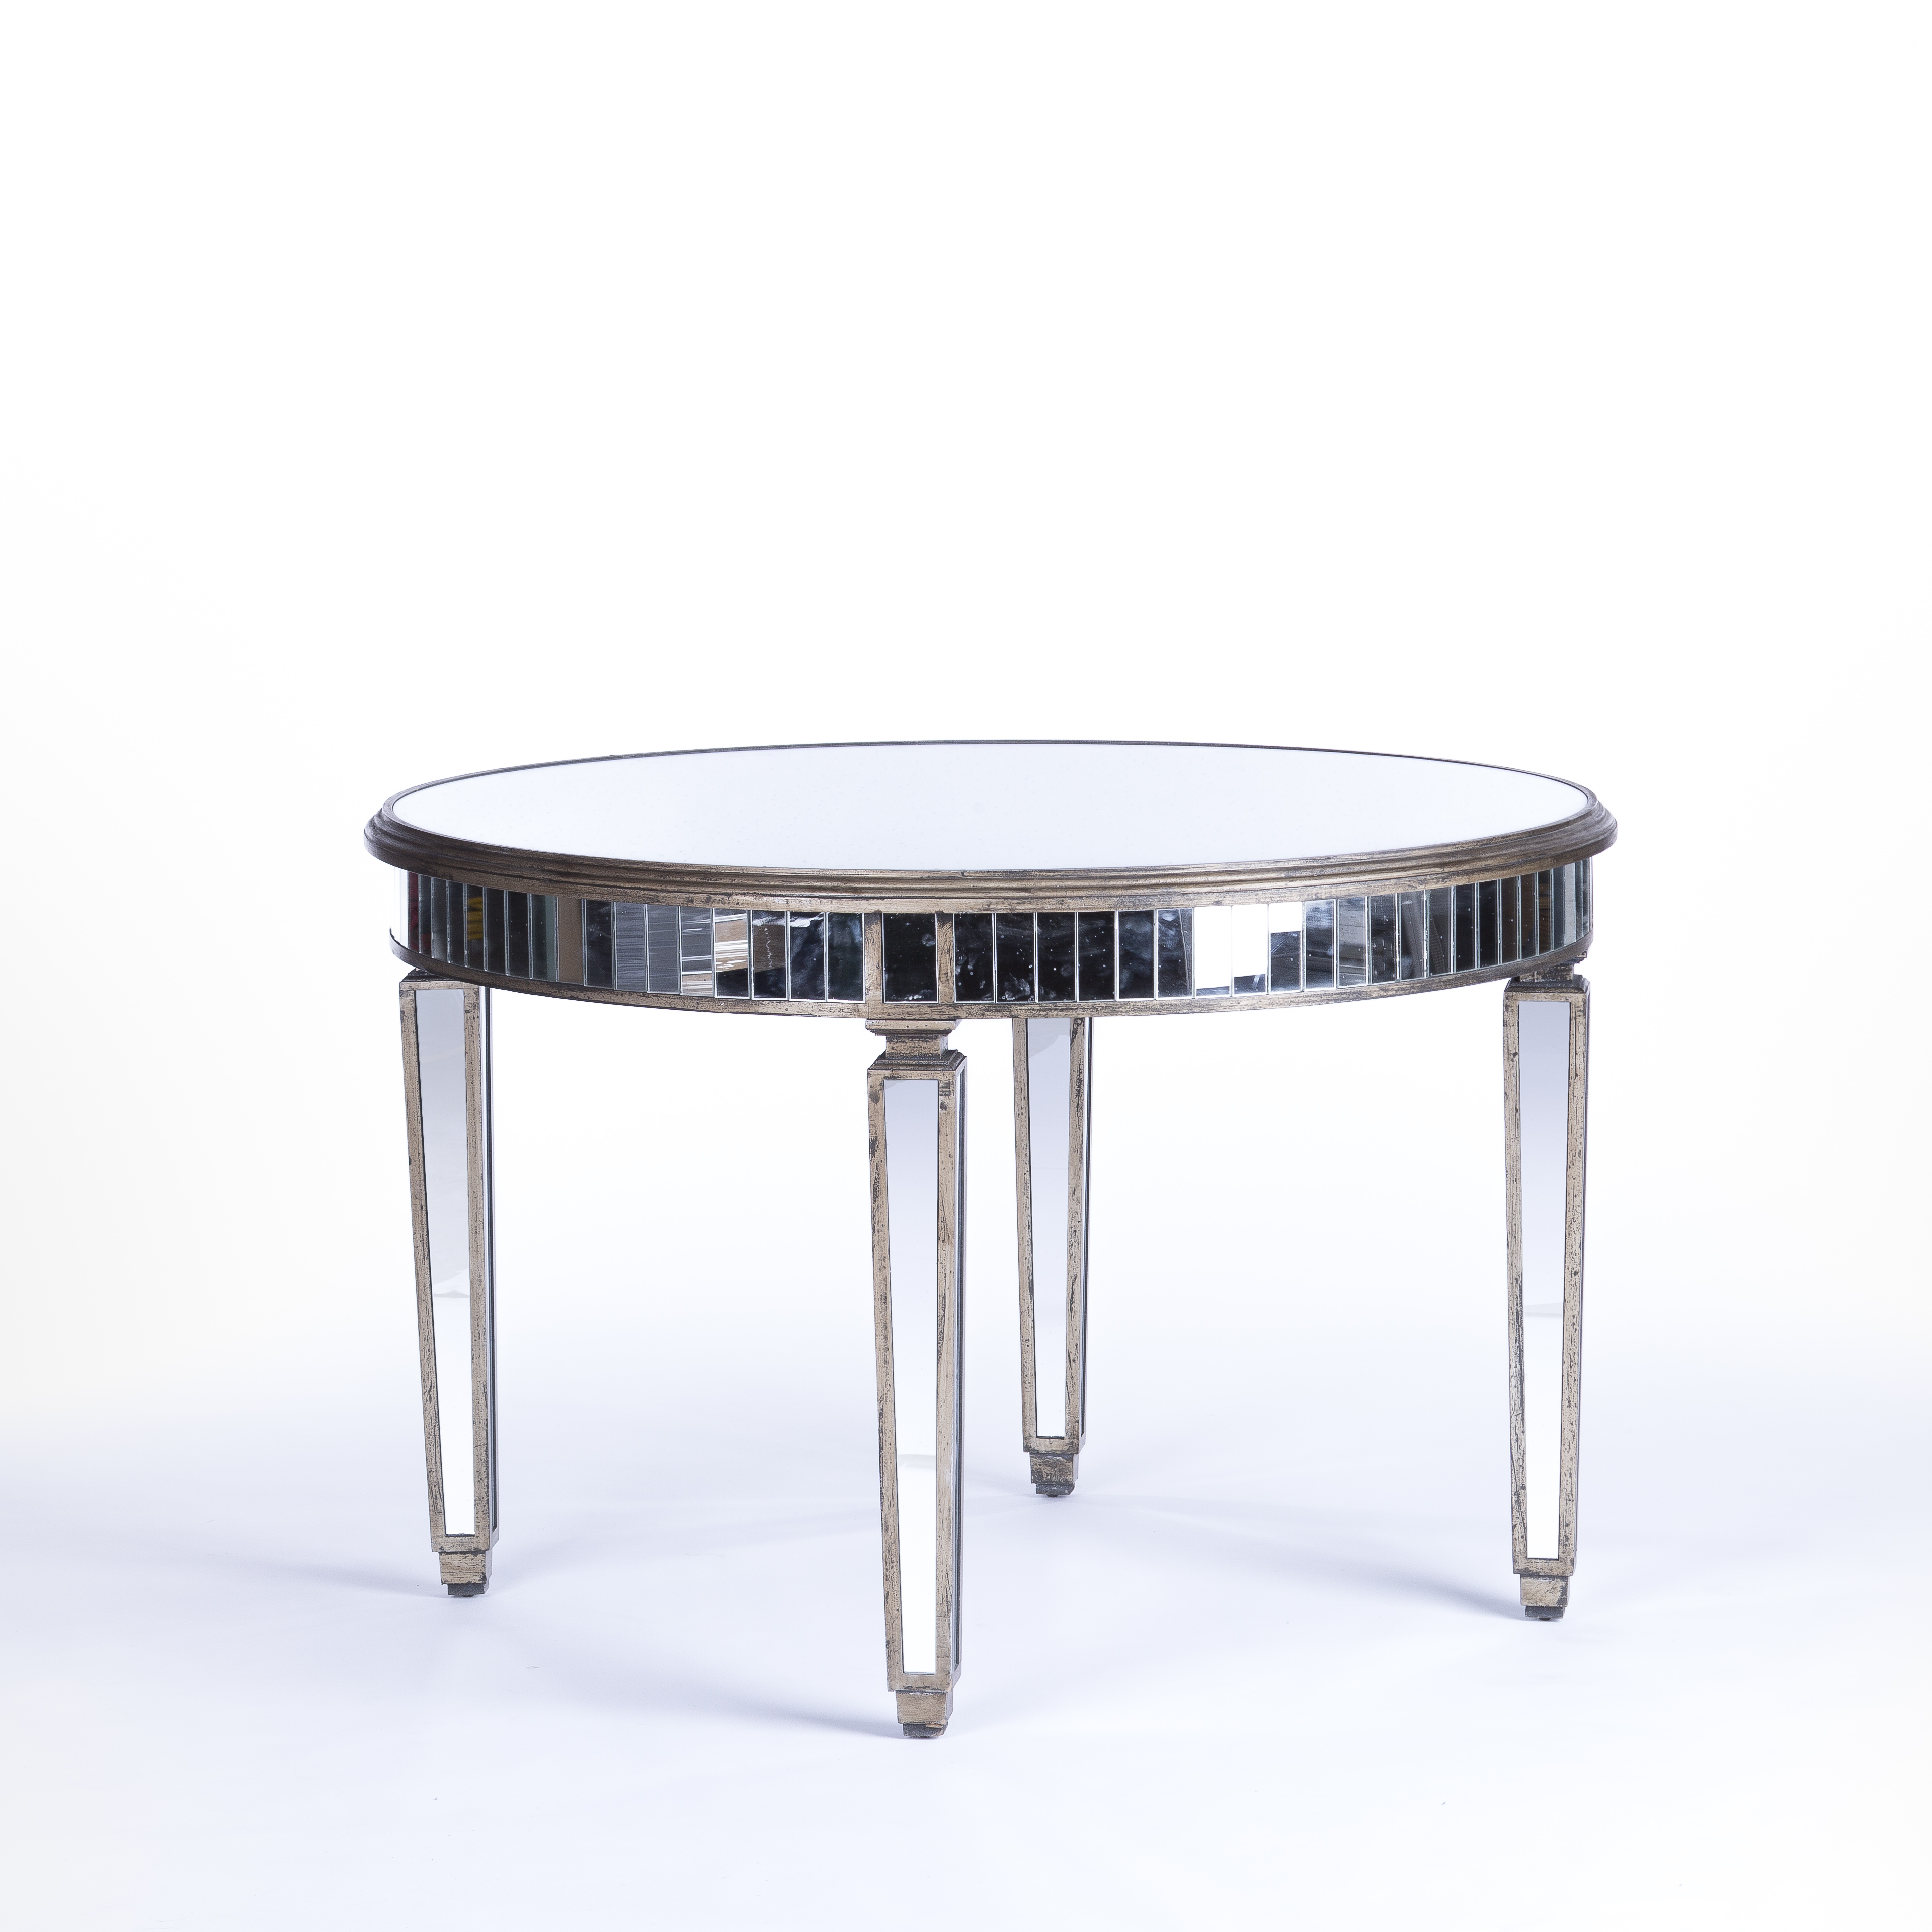 mirrored furniture rental encore events rentals round table accent tables small vintage console christmas runner pattern dining room sets target cocktail half moon cabinet light